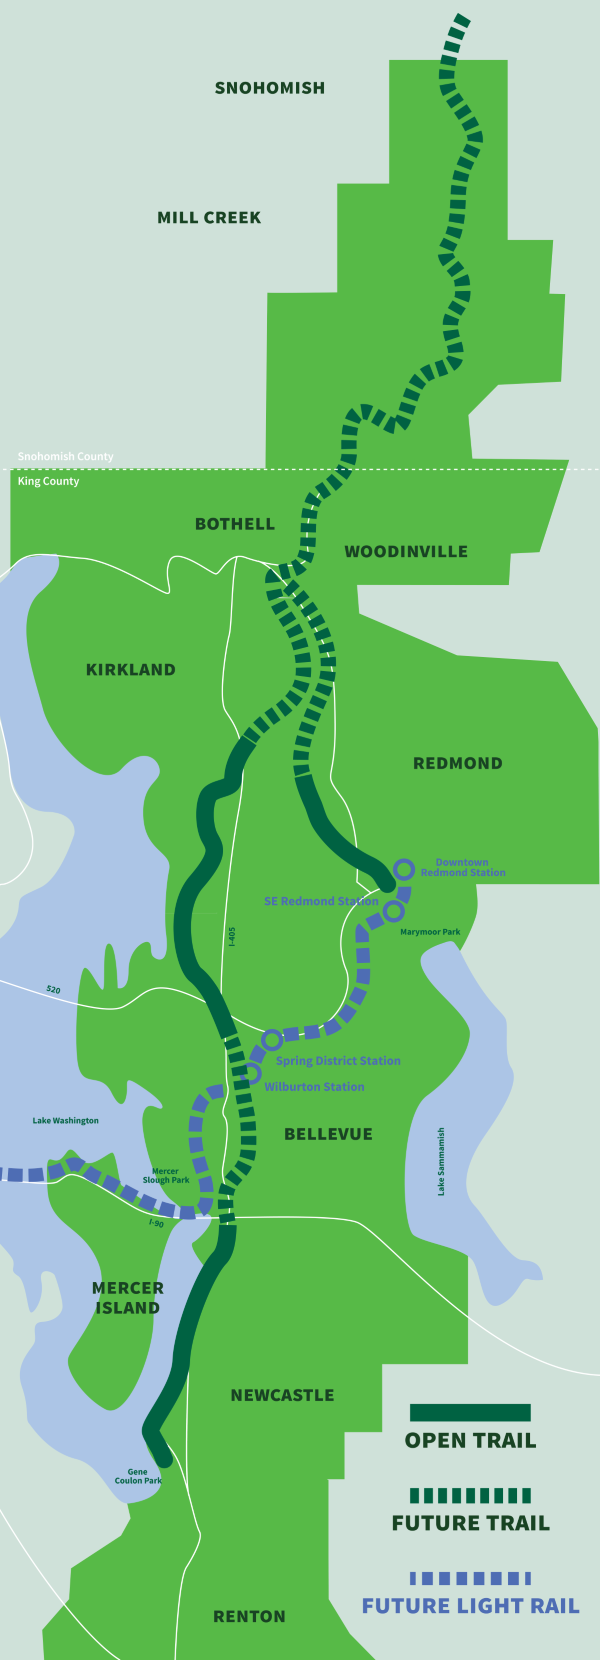 Map of 42 continuous miles of trails and sections of light rail connecting east Lake Washington to Snohomish County